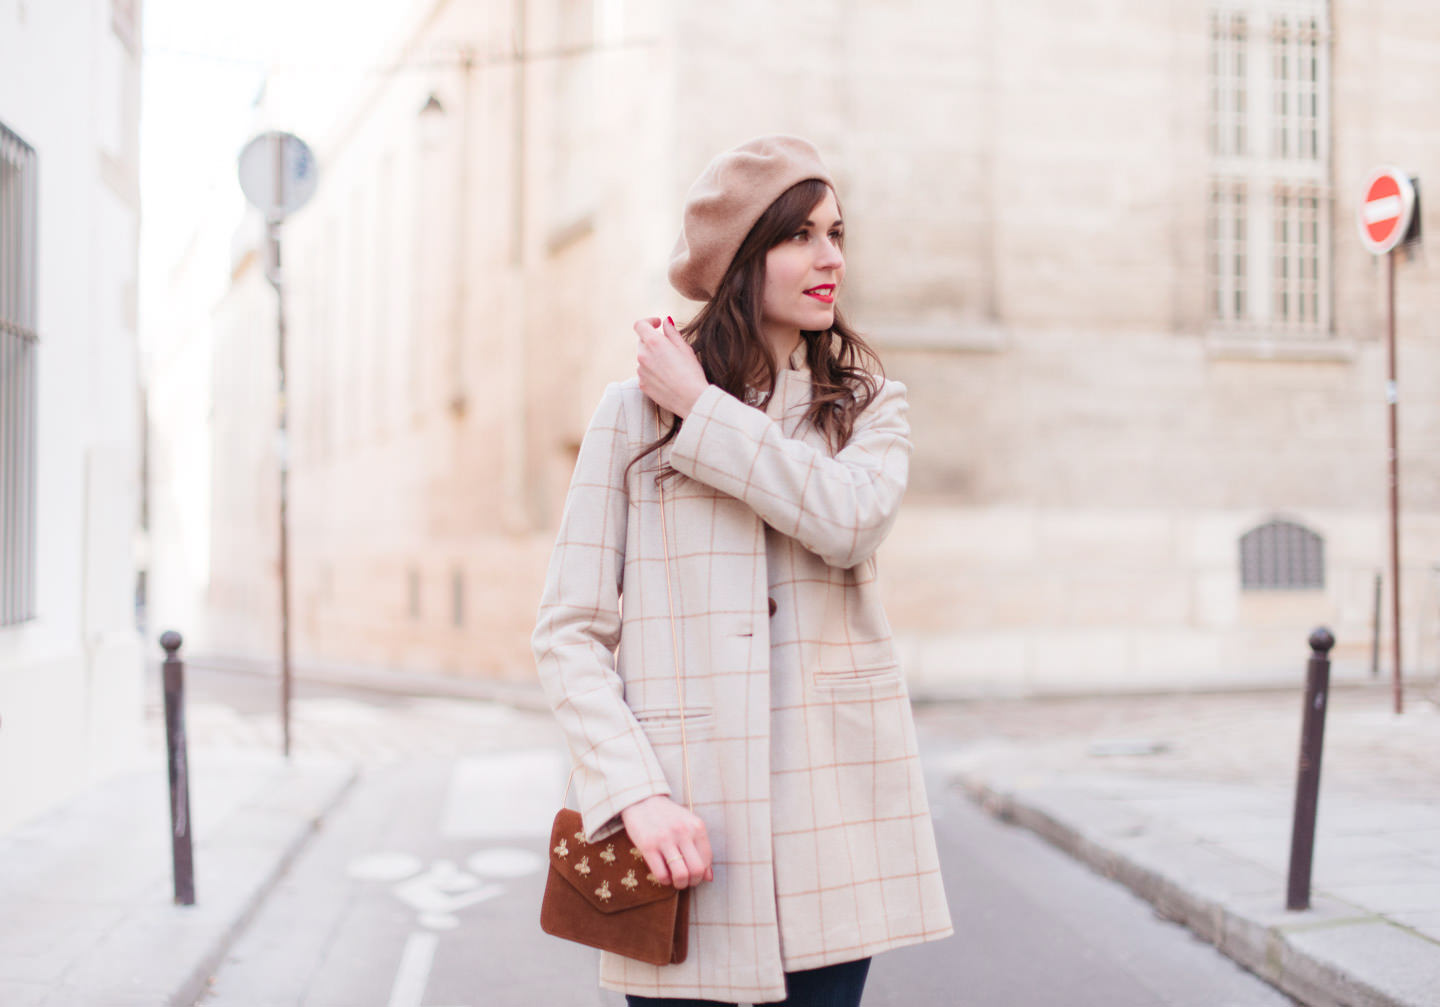 Blog-Mode-And-The-City-Looks-Porter-Le-Beret-9